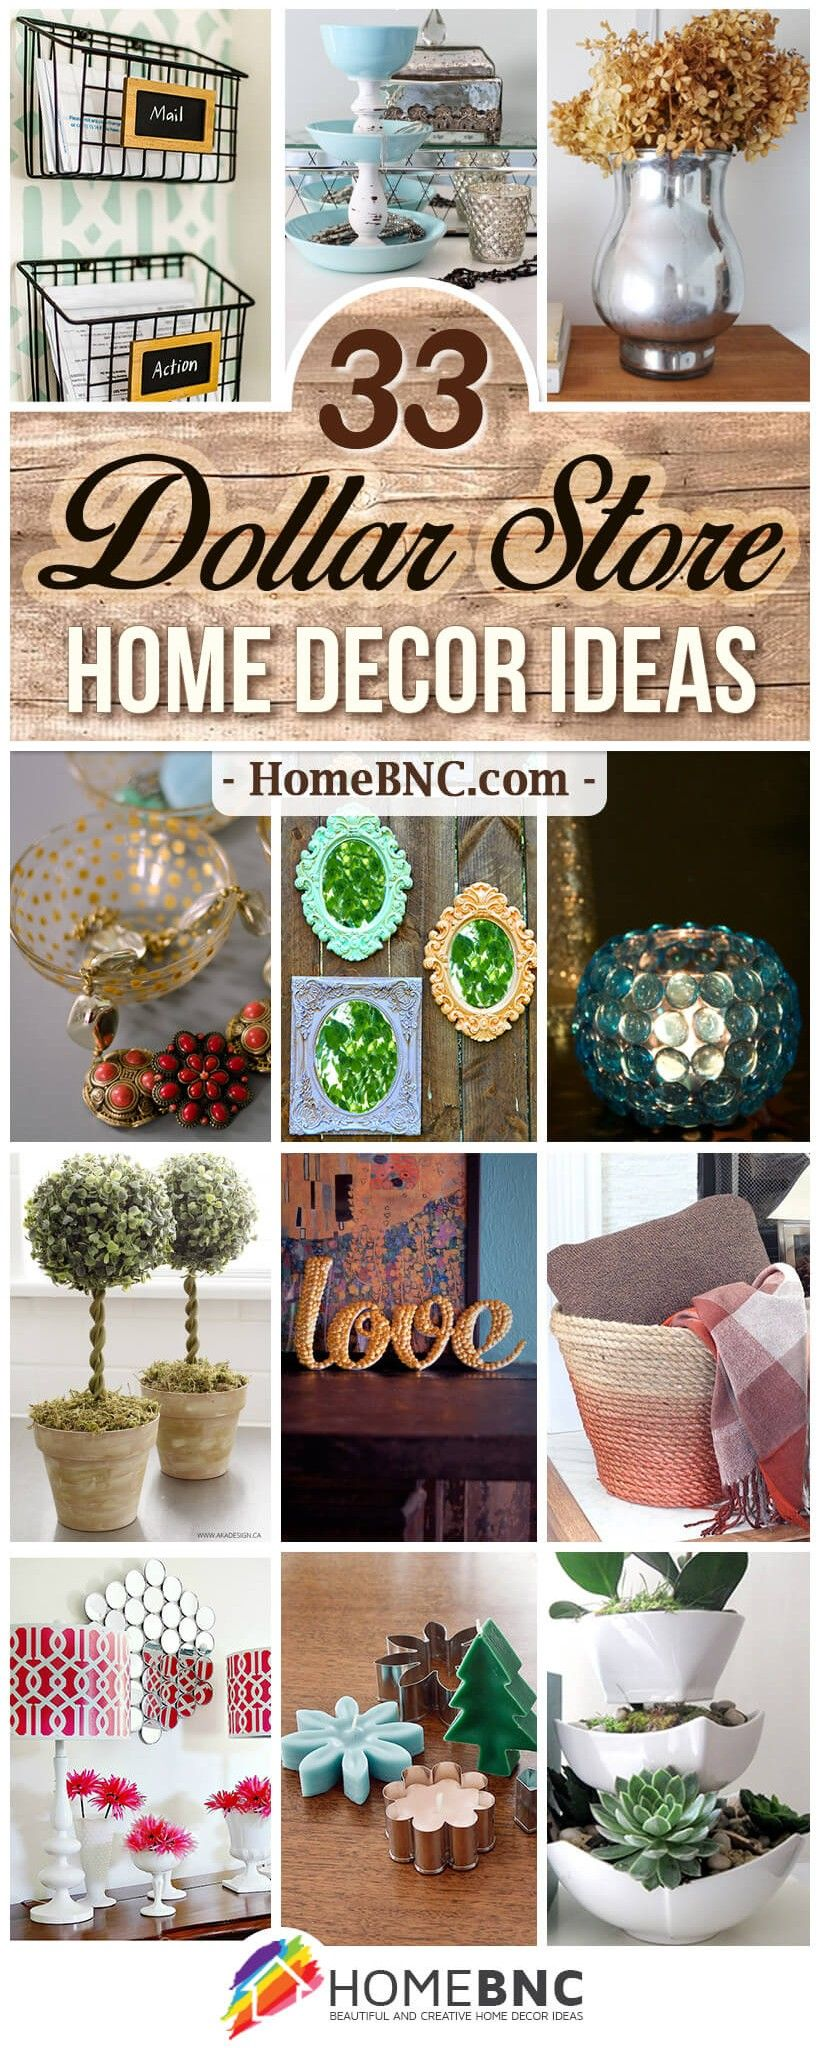 33 Best DIY Dollar Store Home Decor Ideas and Designs for 2018 #cheapdiyhomedecor